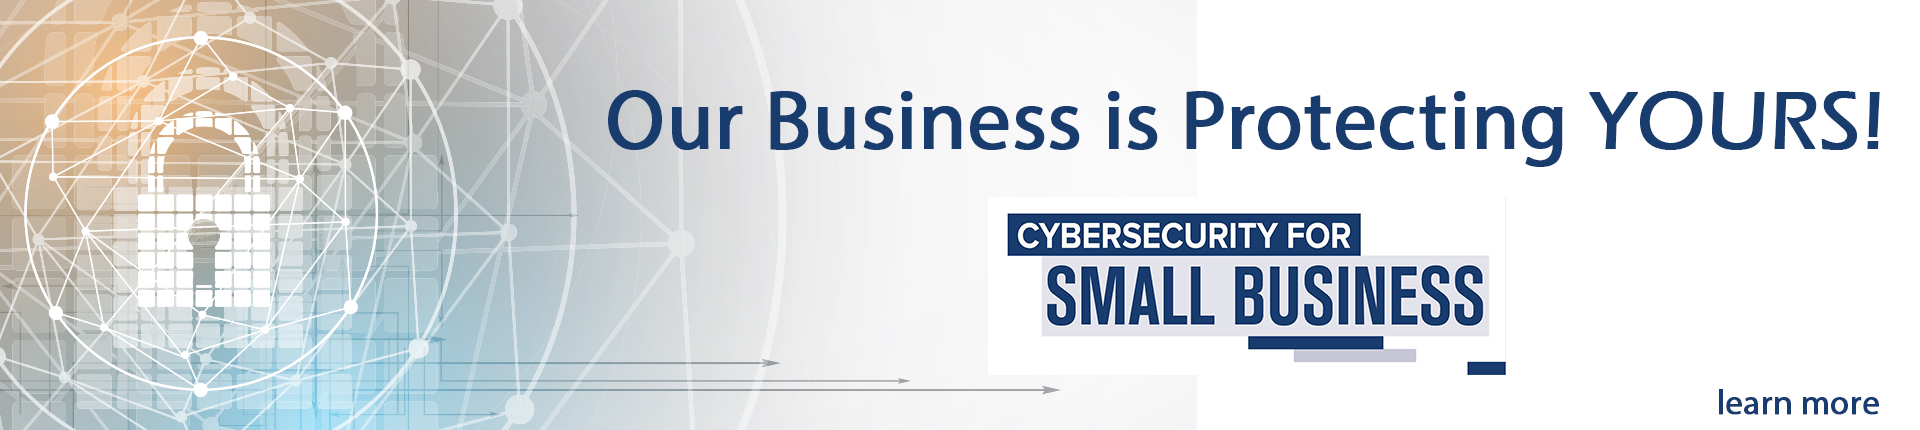 Cybersecurity protecting our small businesses